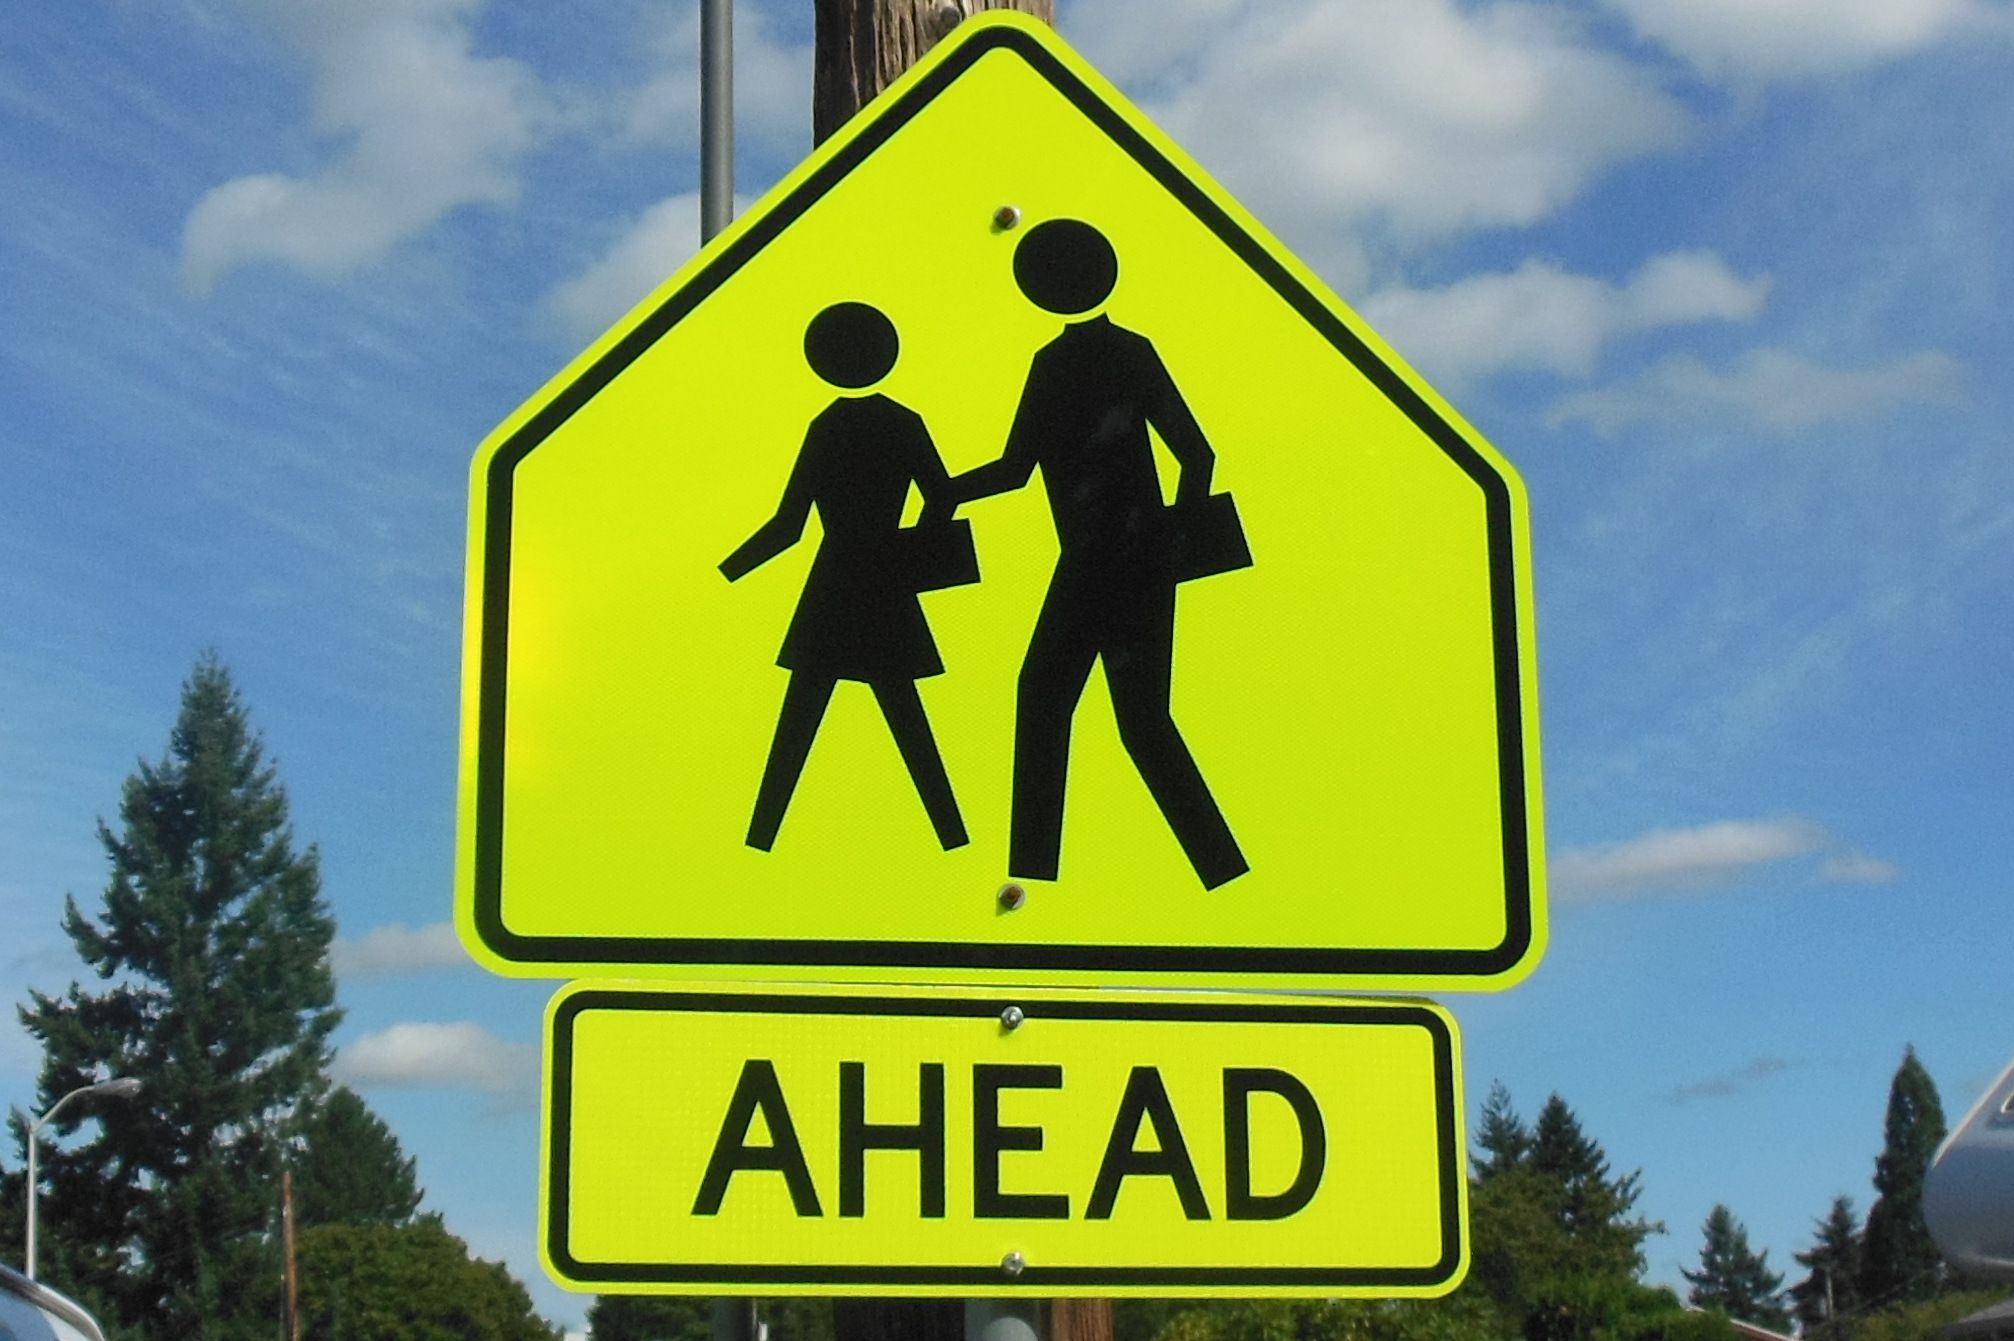 11 Walking Safety Rules Of The Road